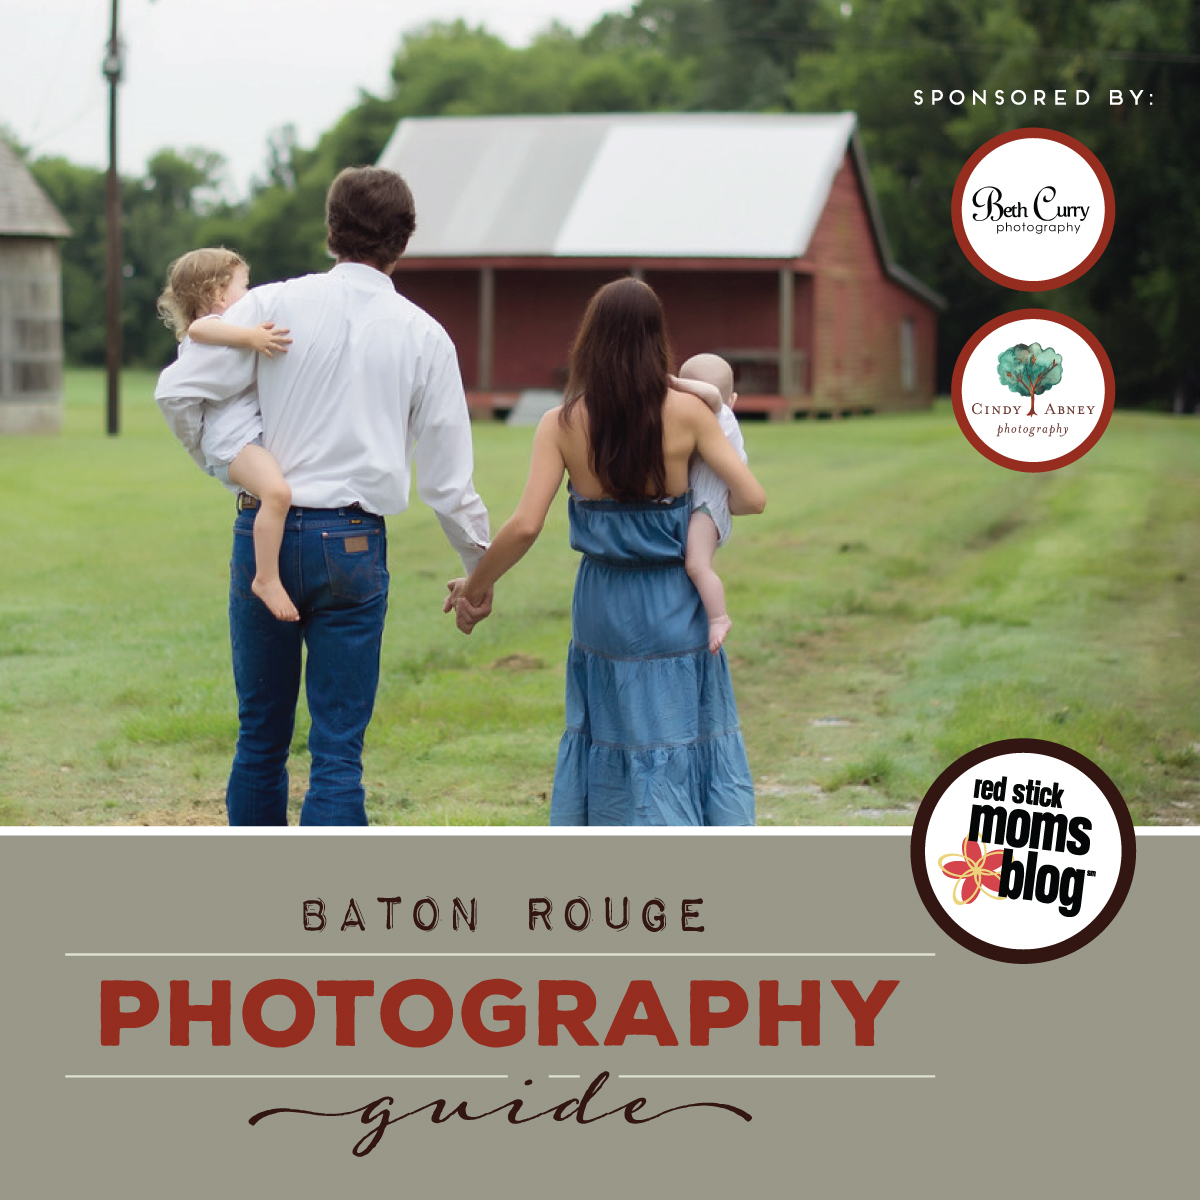 Listed on The Guide to Baton Rouge Area Family Photographers -